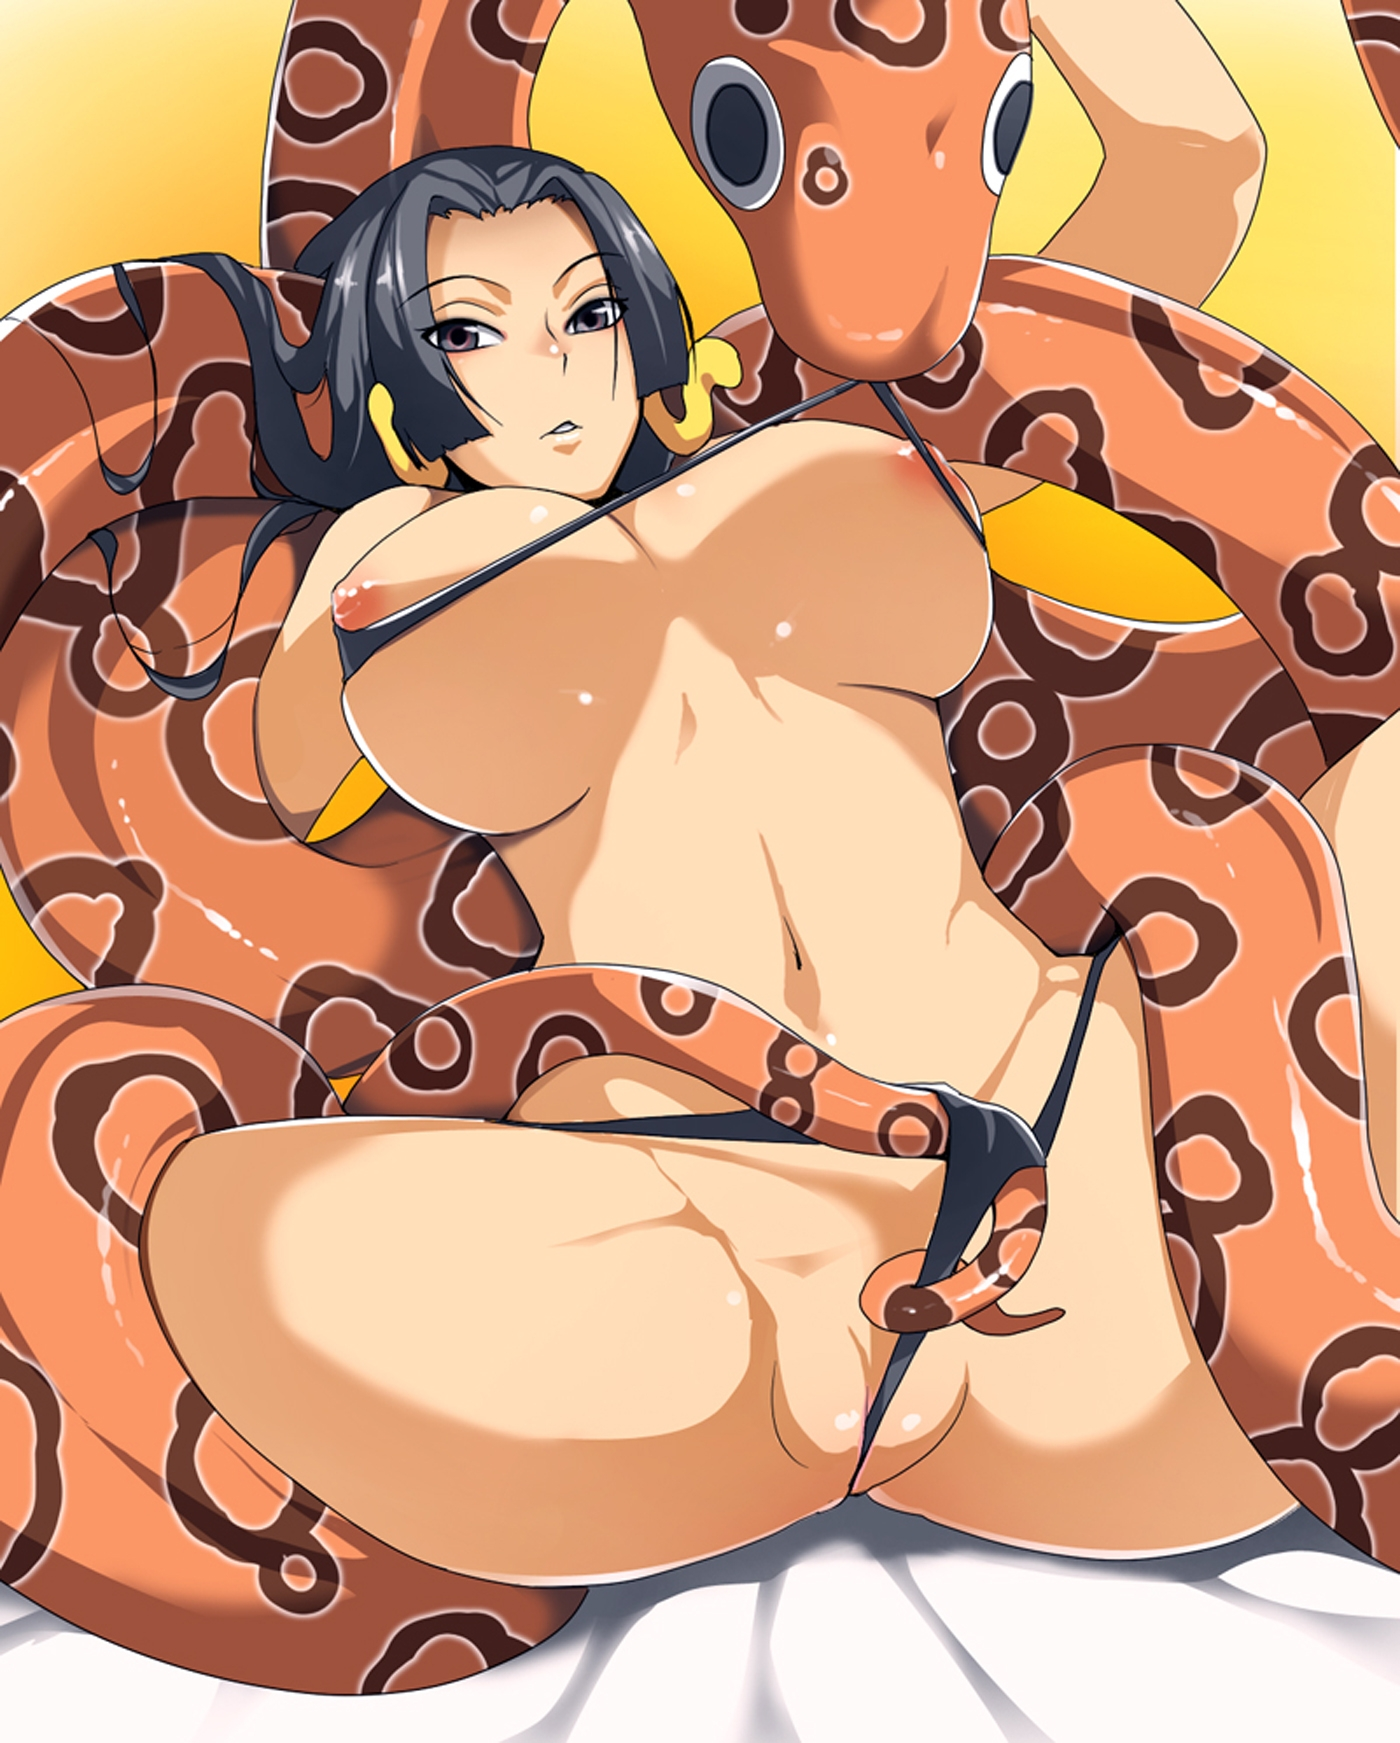 Toon sex pic ##00013061821 bikini black hair boa hancock breasts female grey eyes high resolution huge breasts kosame daizu long hair navel nipples one piece pussy resized snake spread legs swimsuit uncensored wedgie